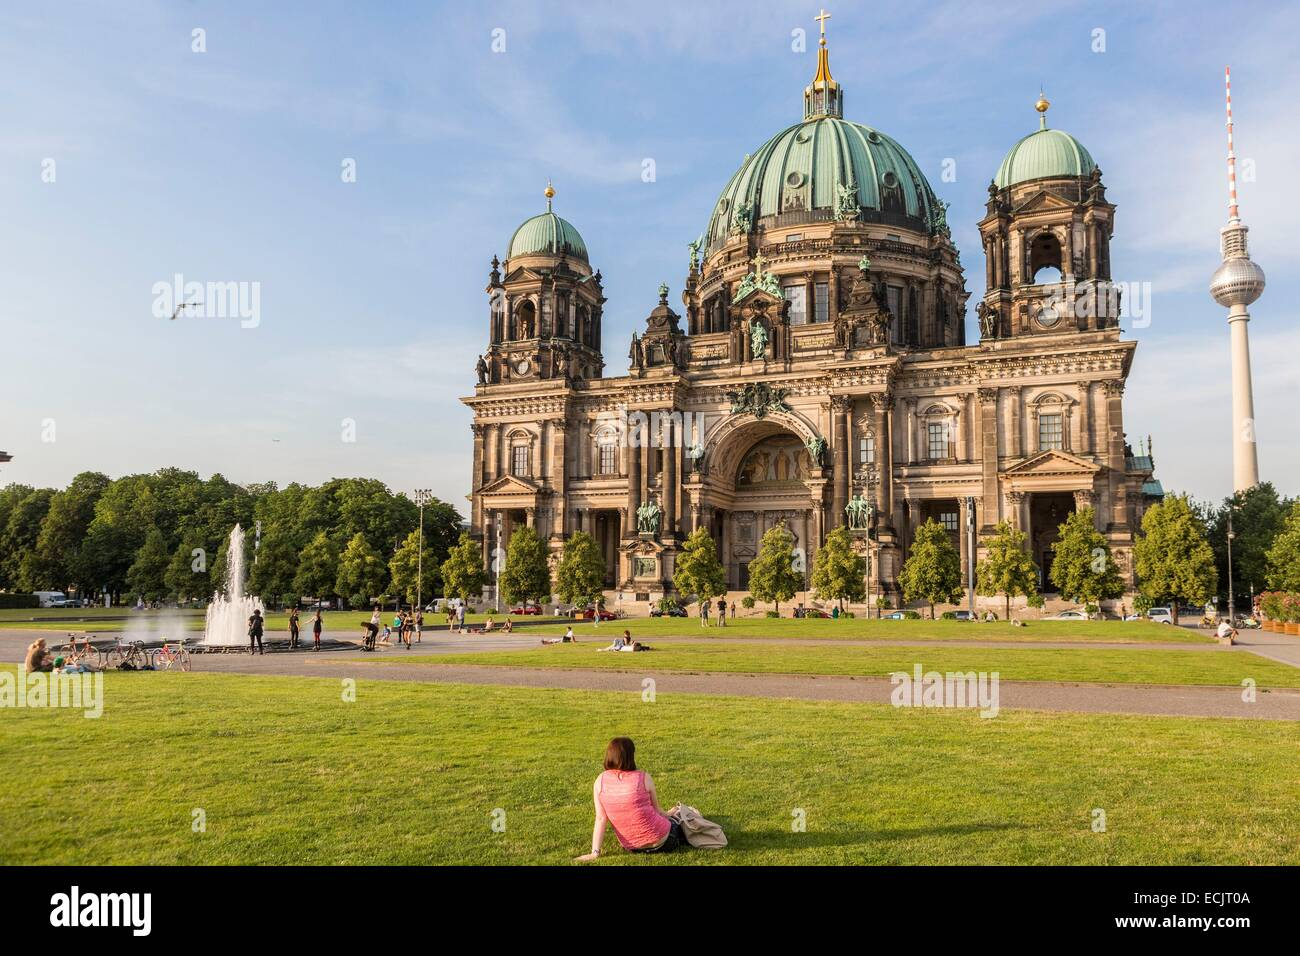 Germany, Berlin, East Berlin, Museum Island, listed as World Heritage by UNESCO, the Ester Berlin Dom, Berlin Cathedral - Stock Image